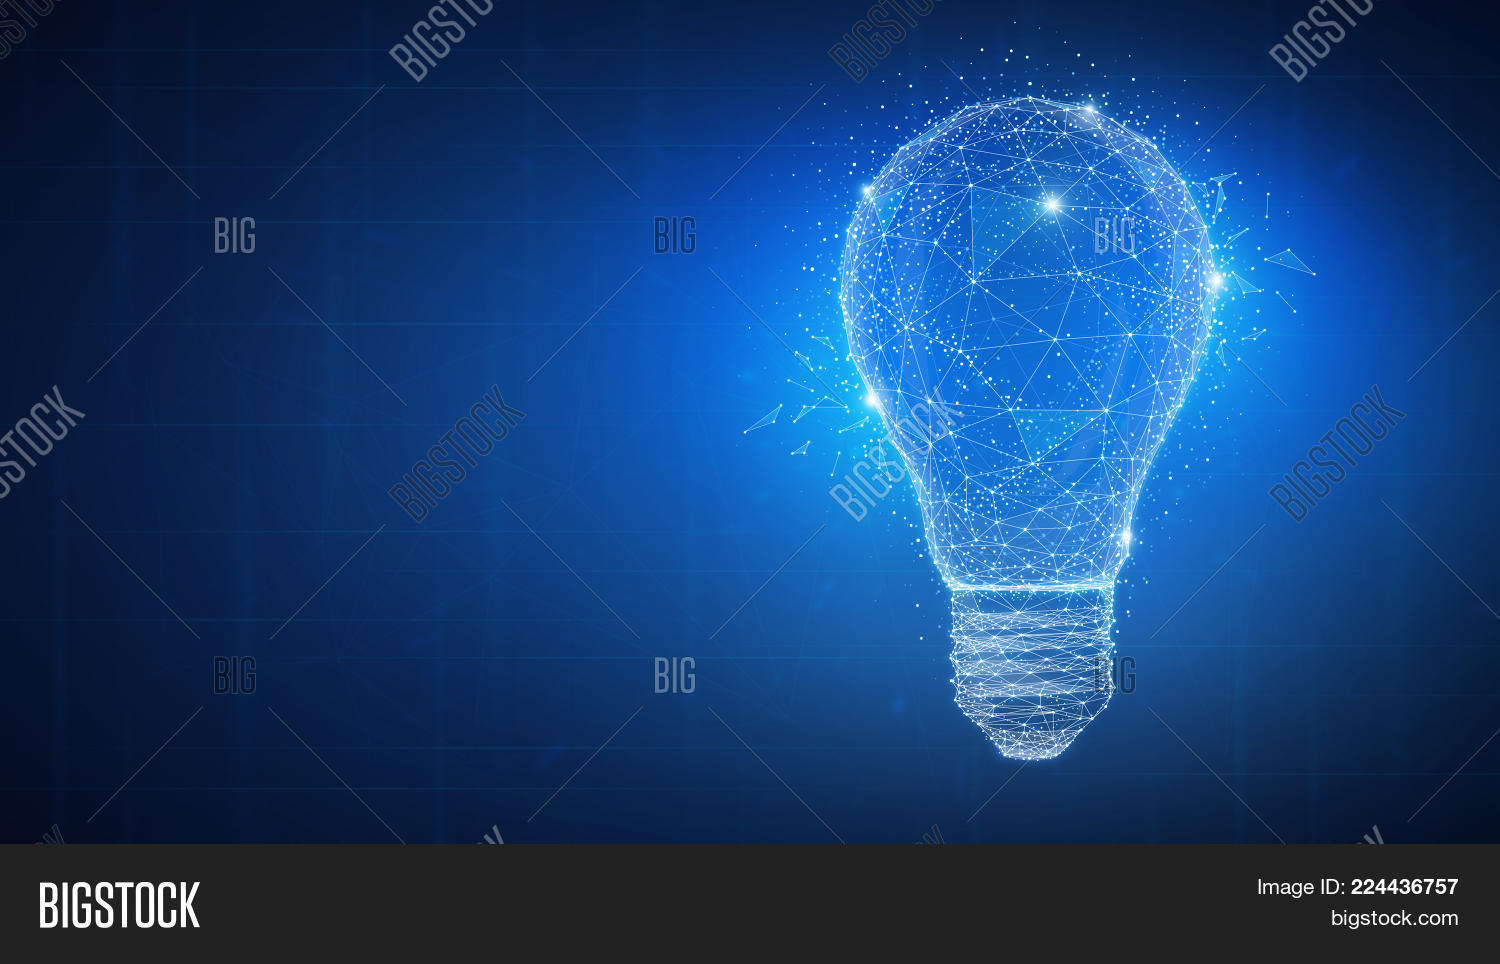 ai,background,banner,bit,bit-coin,bitcoin,blockchain,brainstorming,bulb,business,communication,concept,conceptual,connection,creative,creativity,crypto,cryptocurrency,cryptography,design,digital,e-business,effective,electricity,electronic,element,energy,ethereum,exchange,futuristic,genius,hud,ico,idea,illustration,innovation,inspiration,internet,invention,lamp,mind,mining,network,outline,peer,polygon,power,technology,thinking,virtual